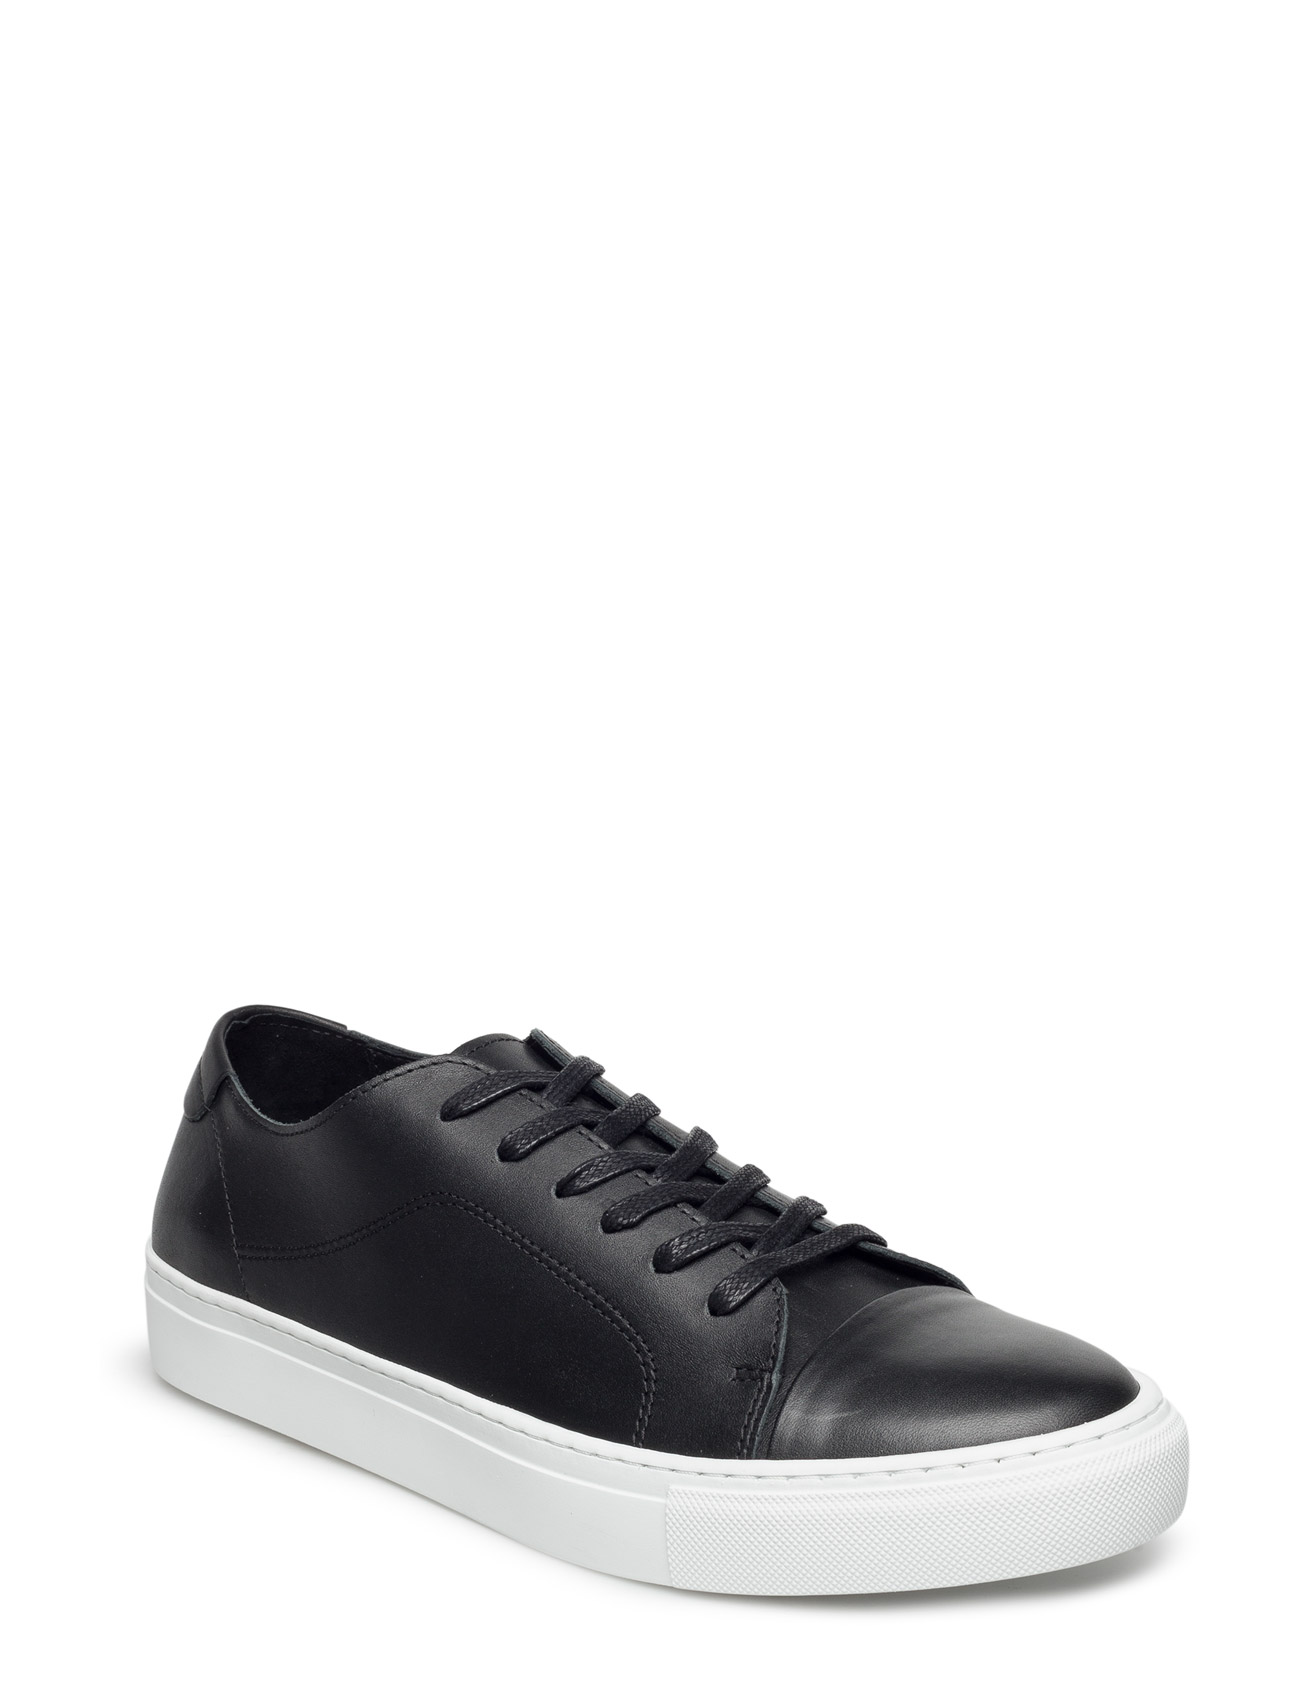 Classic Lace Garment Project Sneakers til Herrer i Grå Nubuck